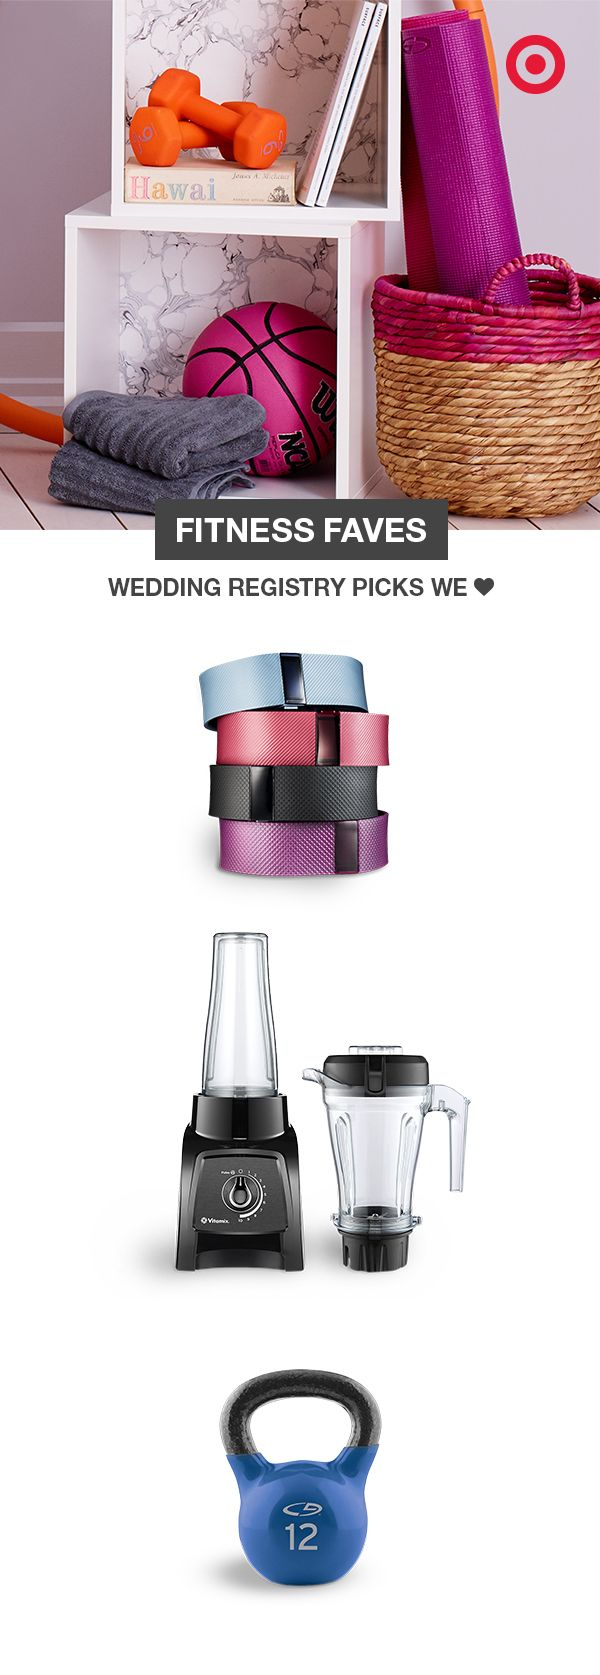 Keep an eye on each other's health with a Fitbit to track your steps, a kettlebell for toning those pecs and biceps, and a Vitamix to shake up your nutrition. You'll want it all on your Target Wedding registry.